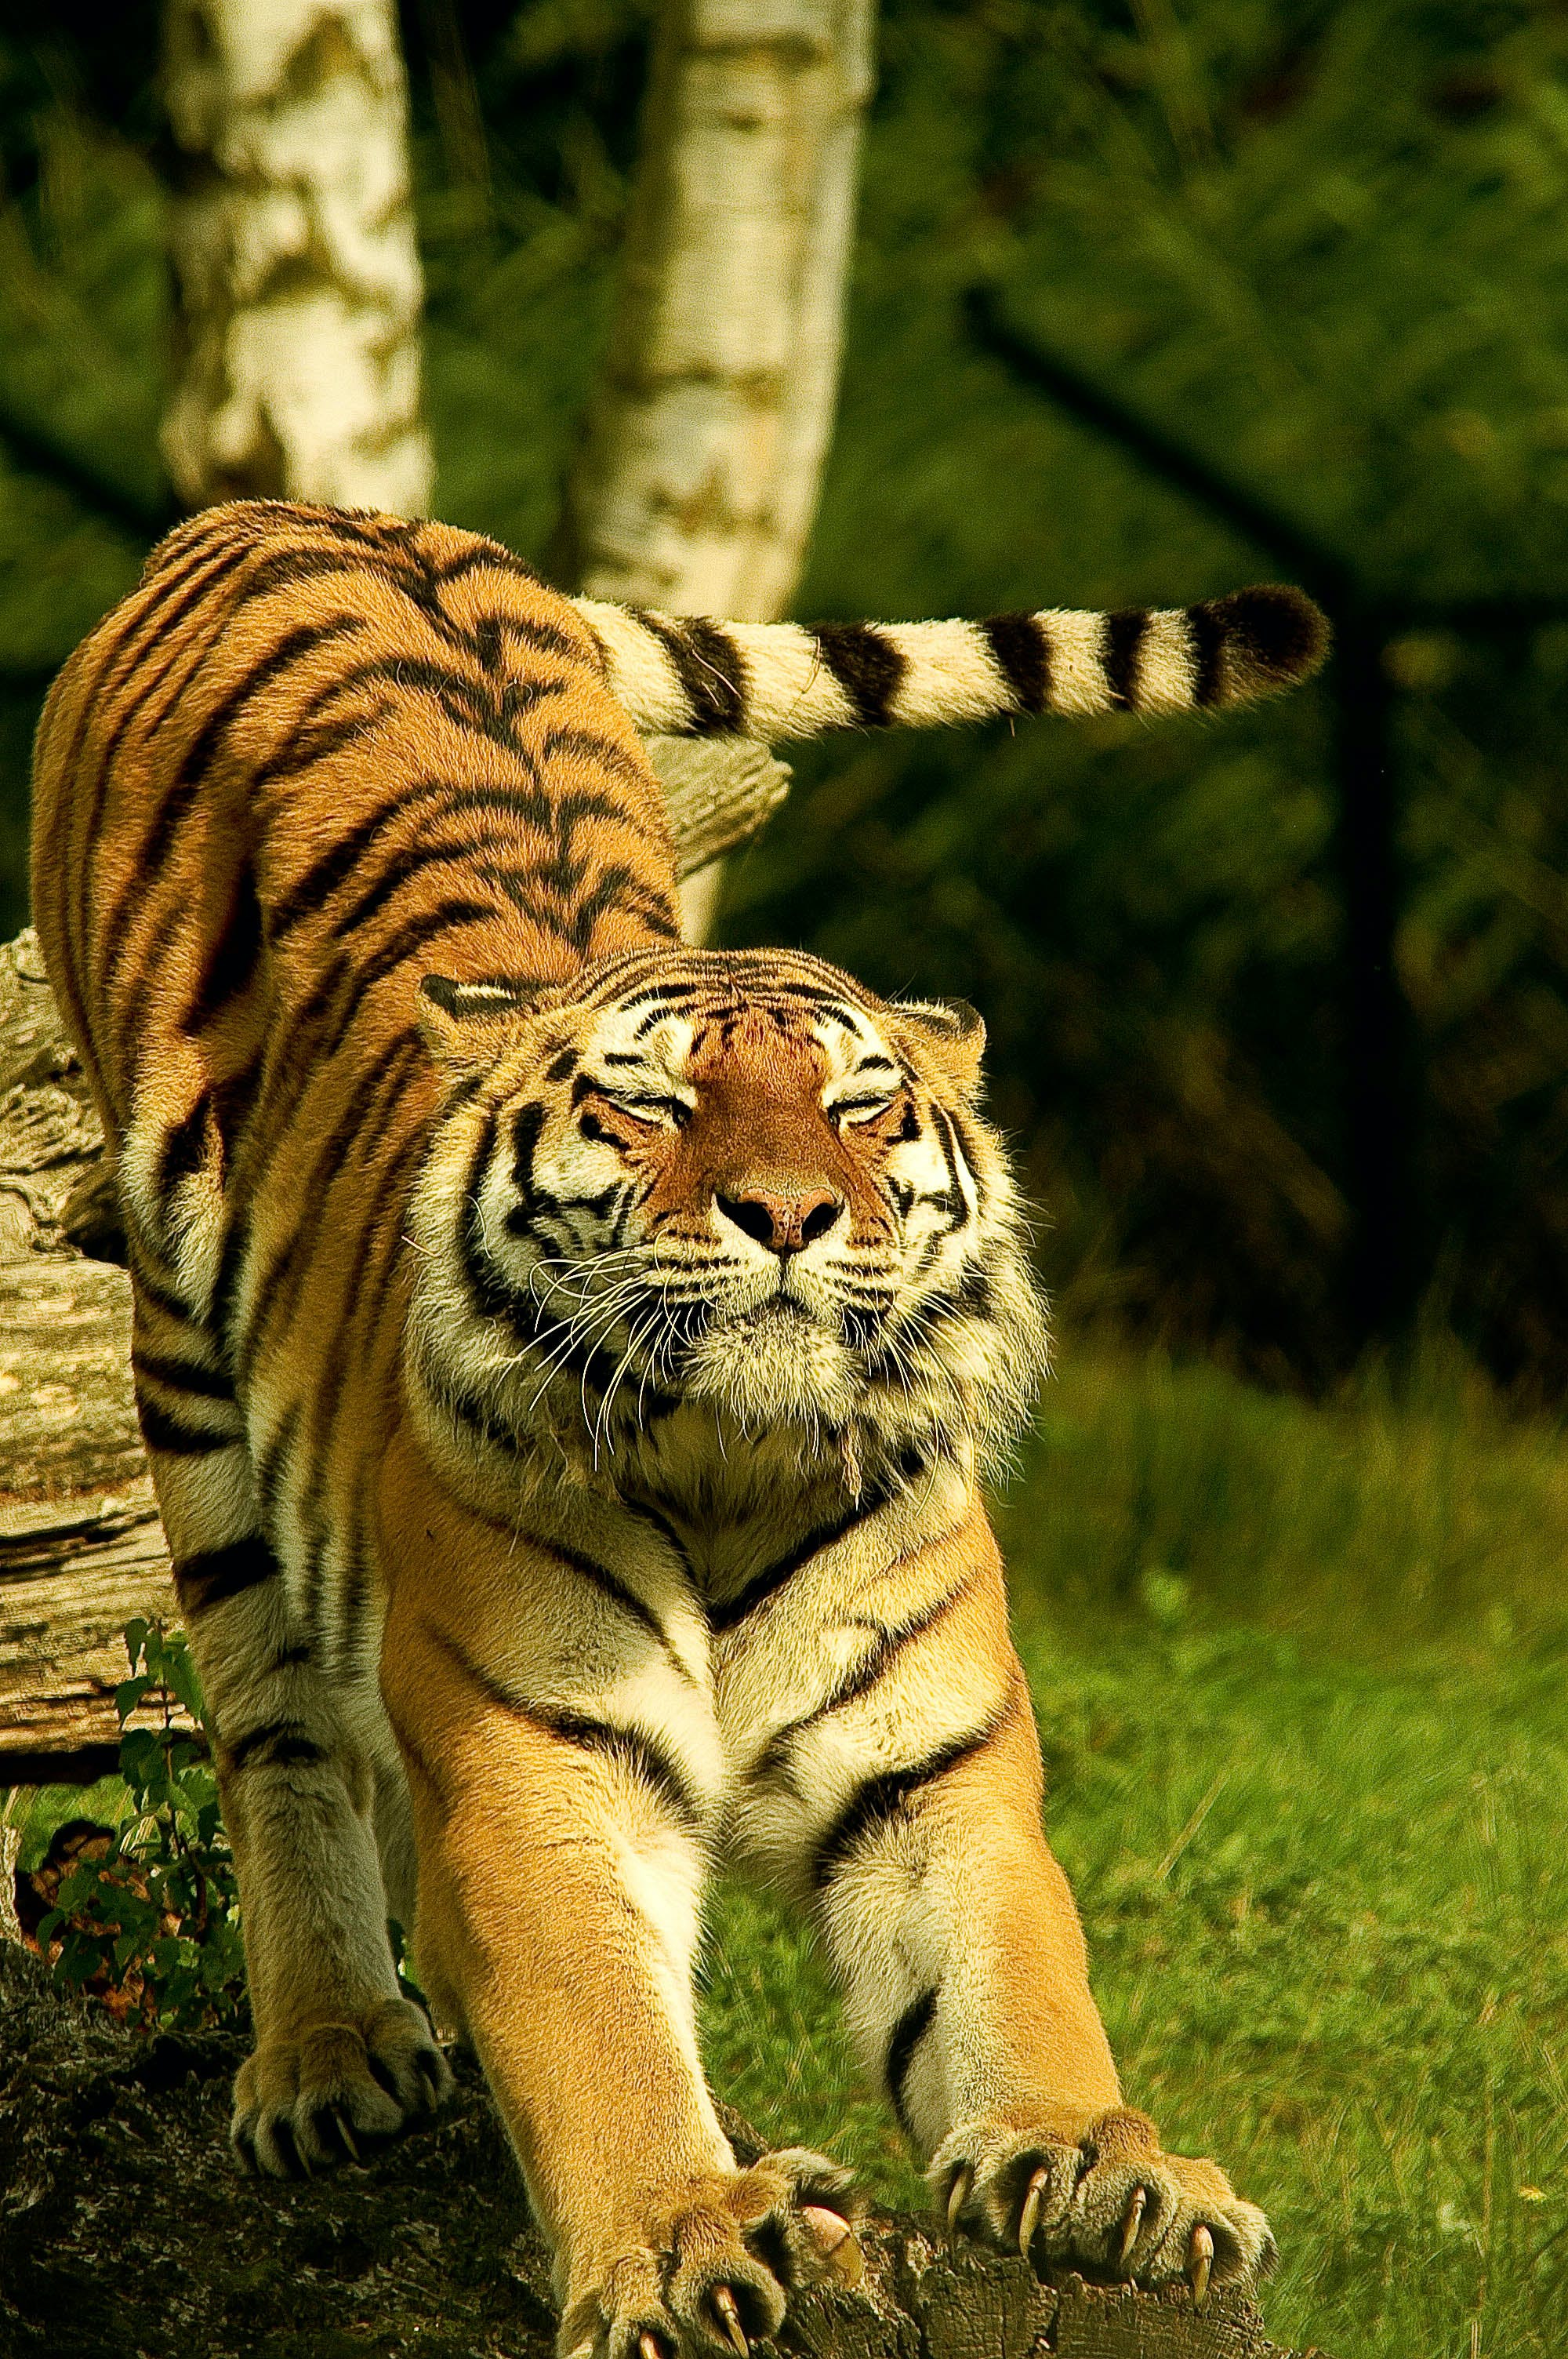 Tiger in Shallow Photo